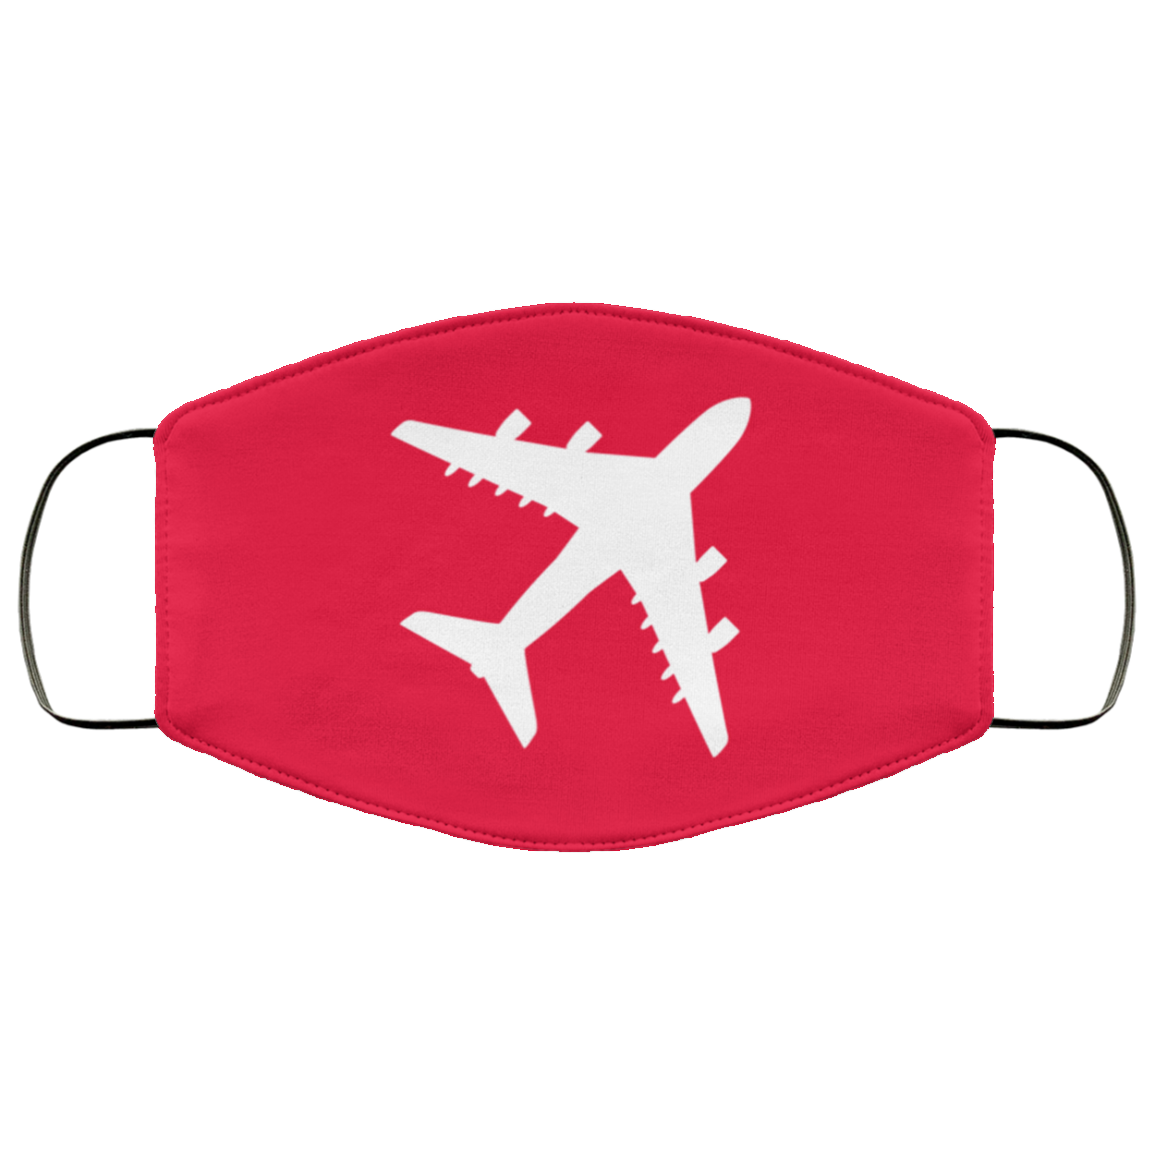 Aviation Themed Washable Face Mask Reusable - Quad Engine Red-Accessories-Flightag